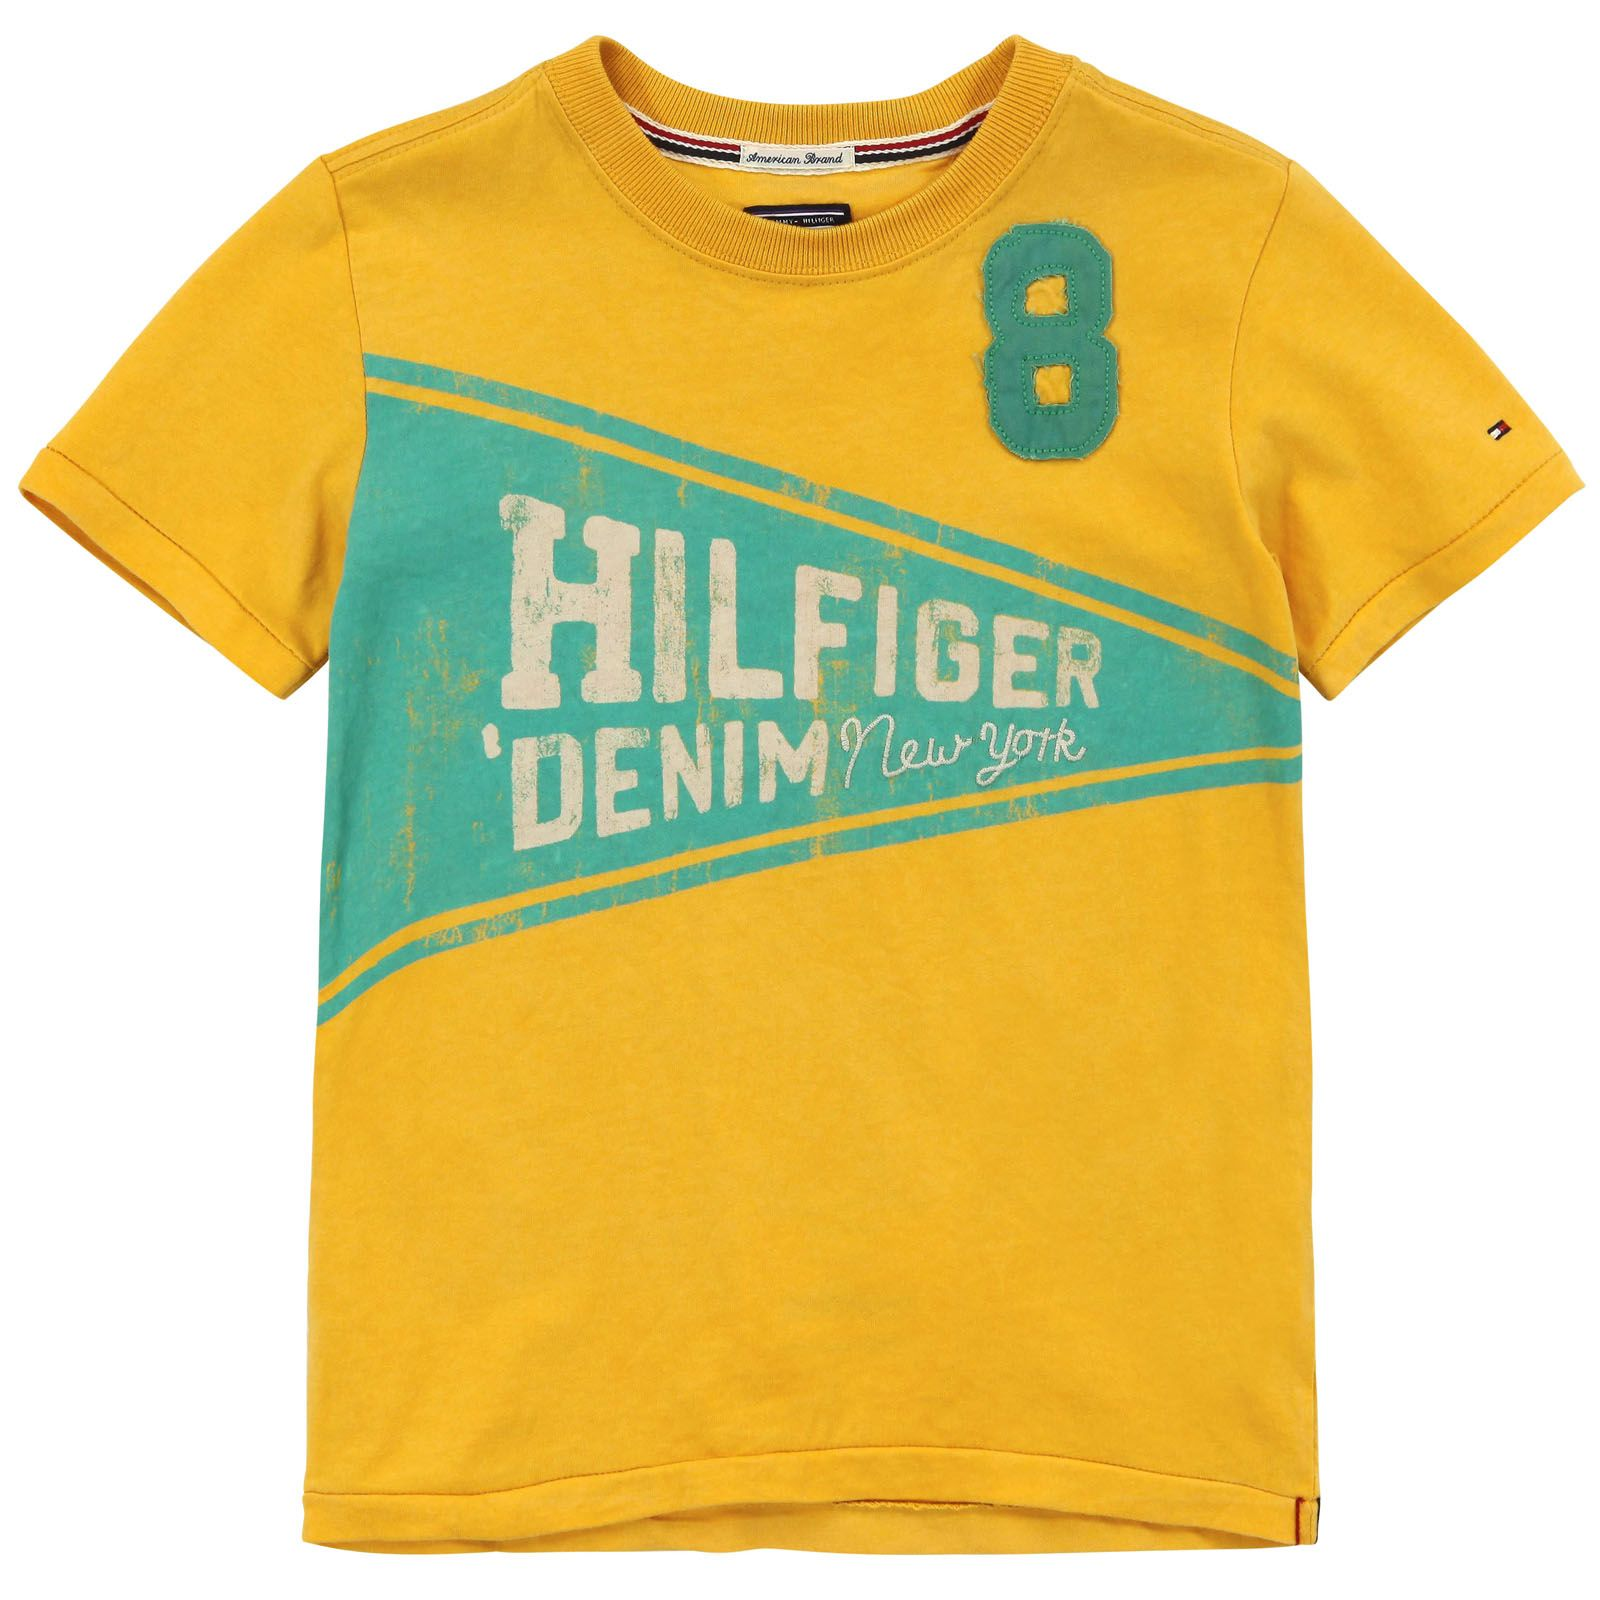 Tommy Hilfiger Honey yellow T-shirt Yellow - 58891 | Melijoe.com